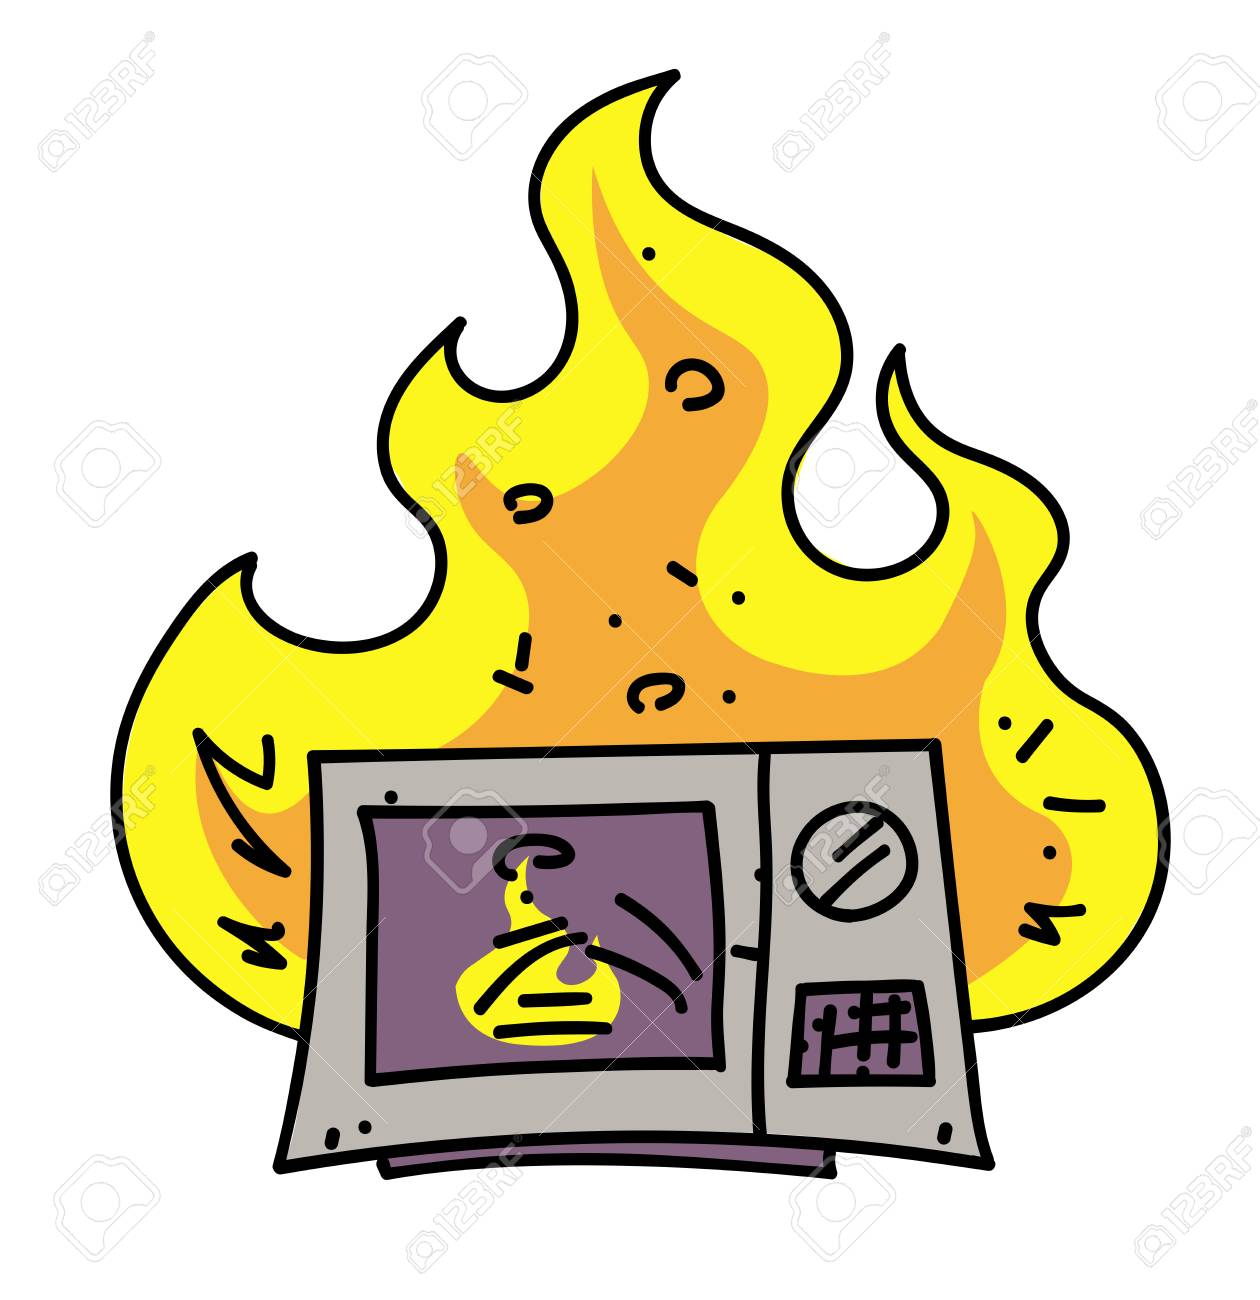 microwave oven on fire cartoon hand drawn image royalty free